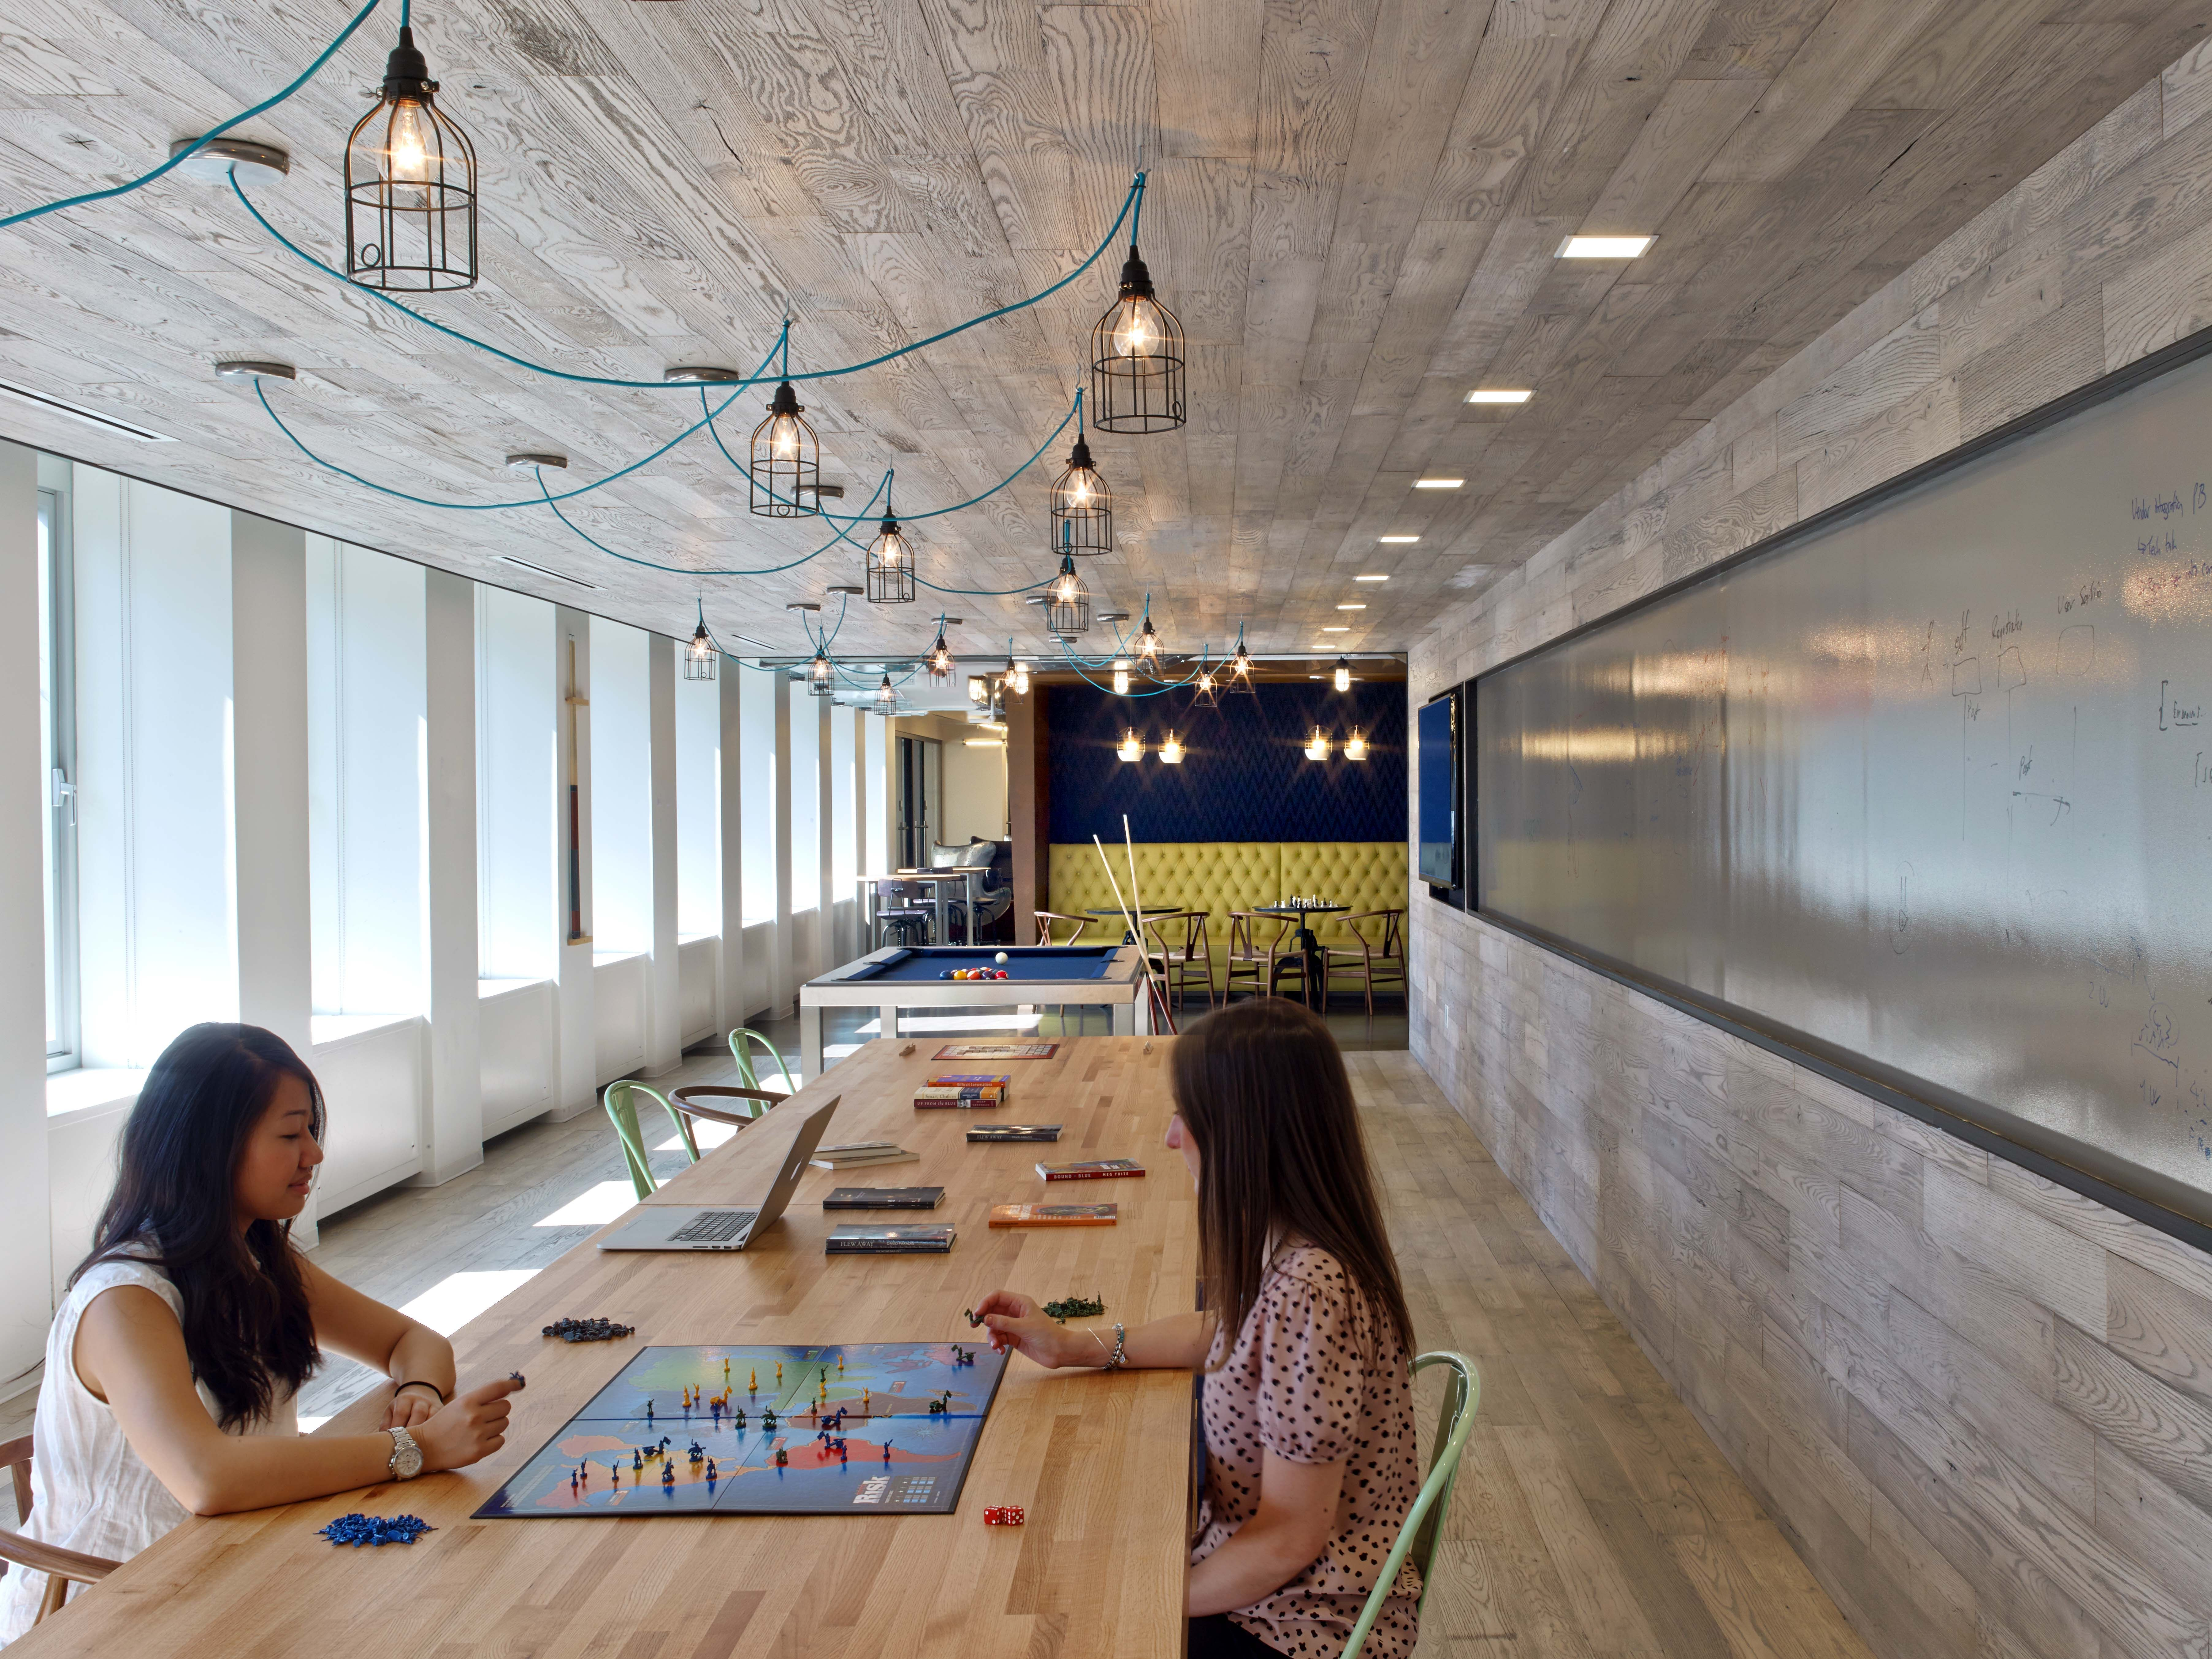 Condé Nast Entertainment S Rustic Open Nyc Office Entertaining Conde Architecture